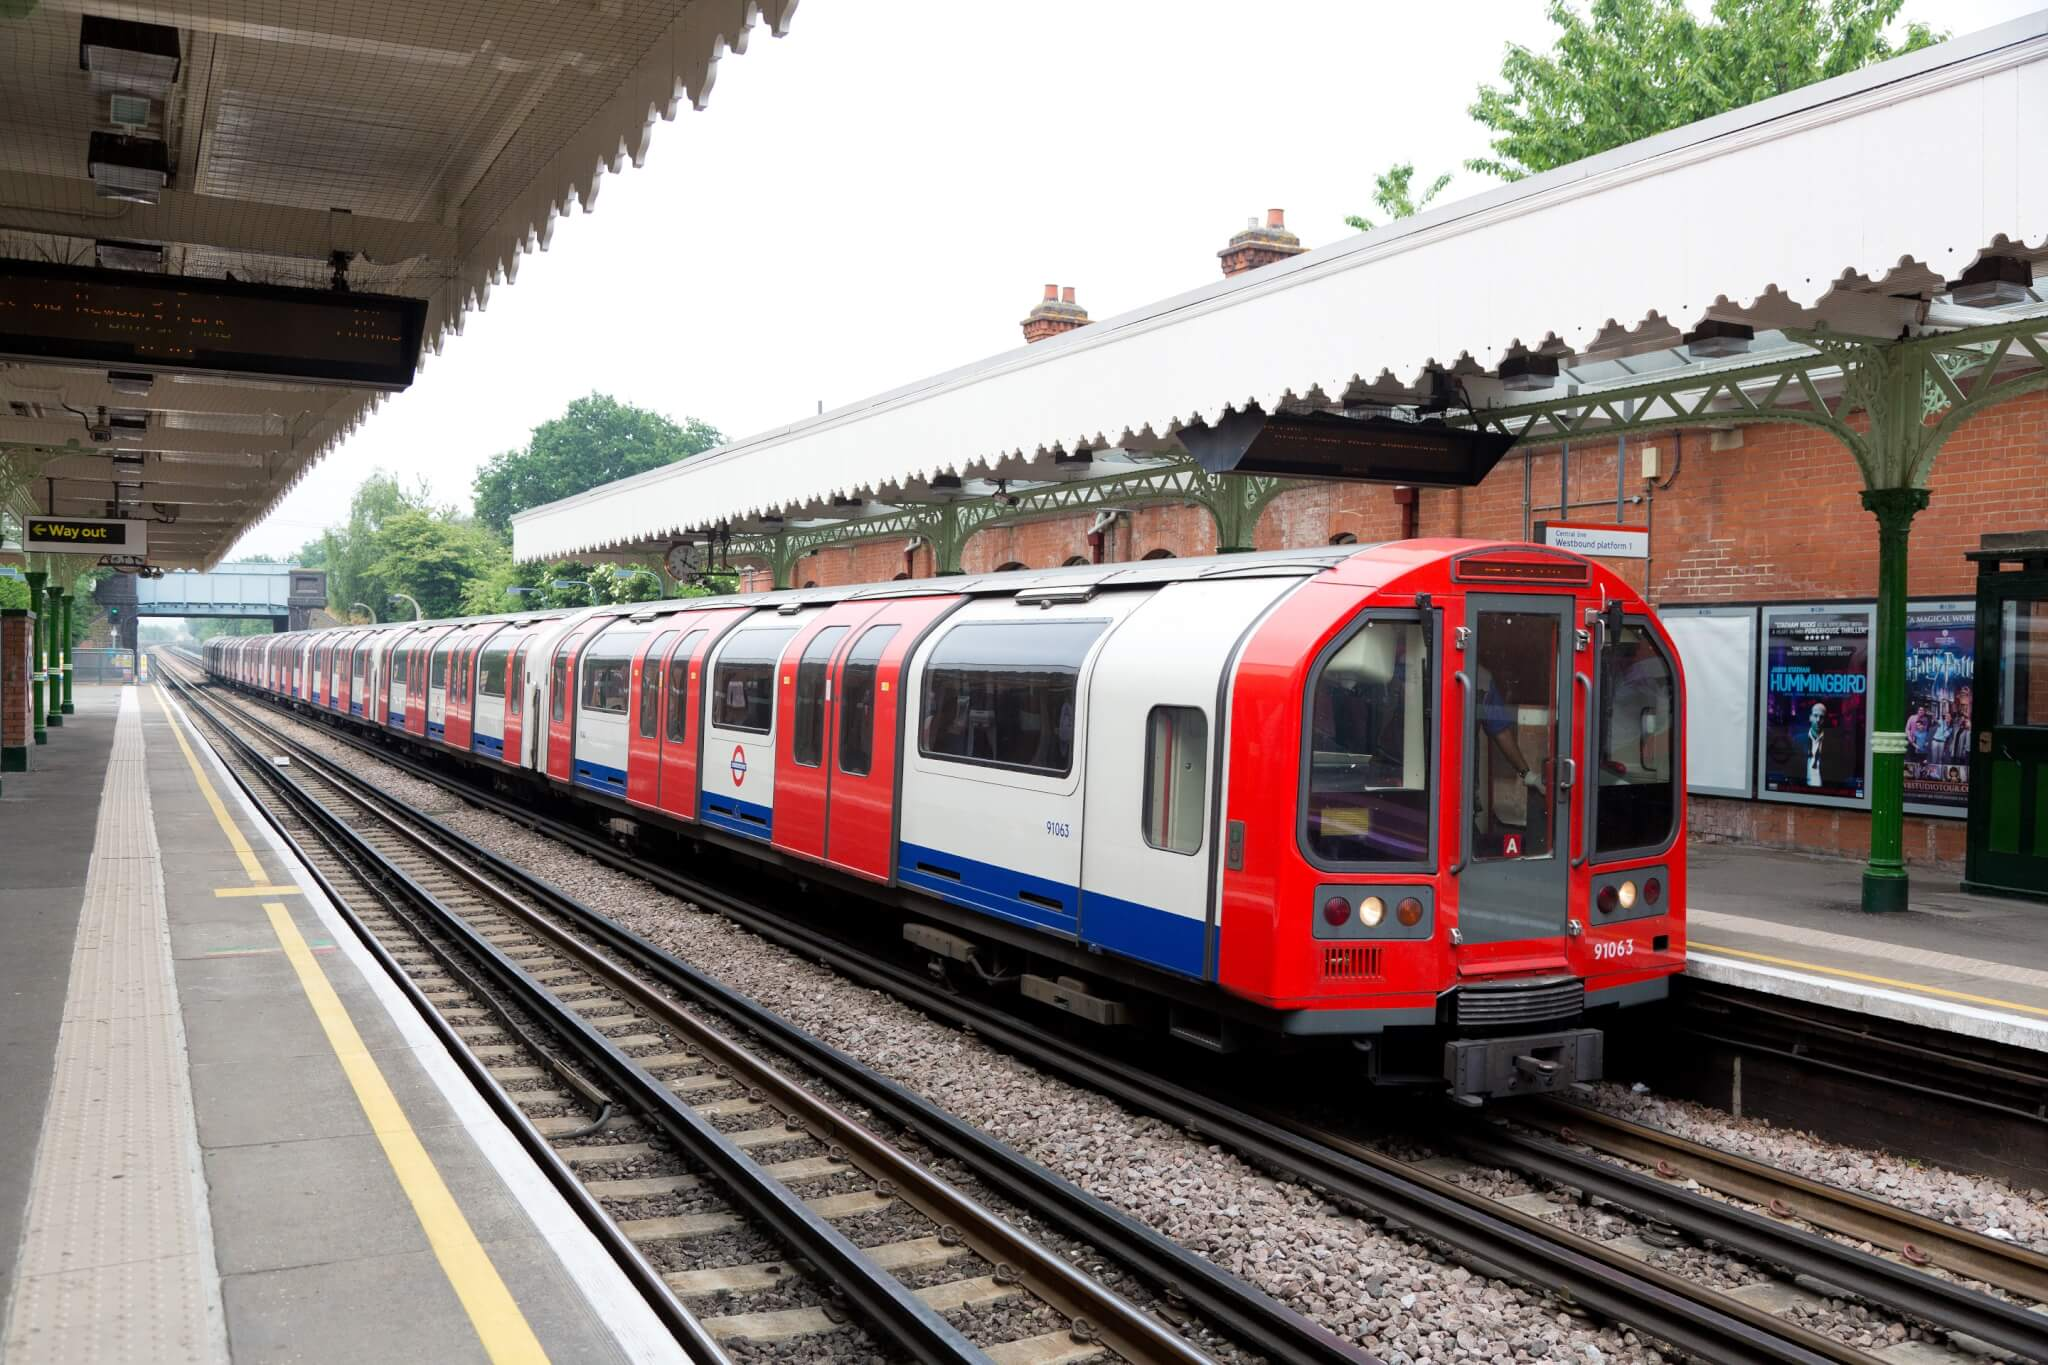 Train Lever In Lodon : London underground s central line trains set for upgrade